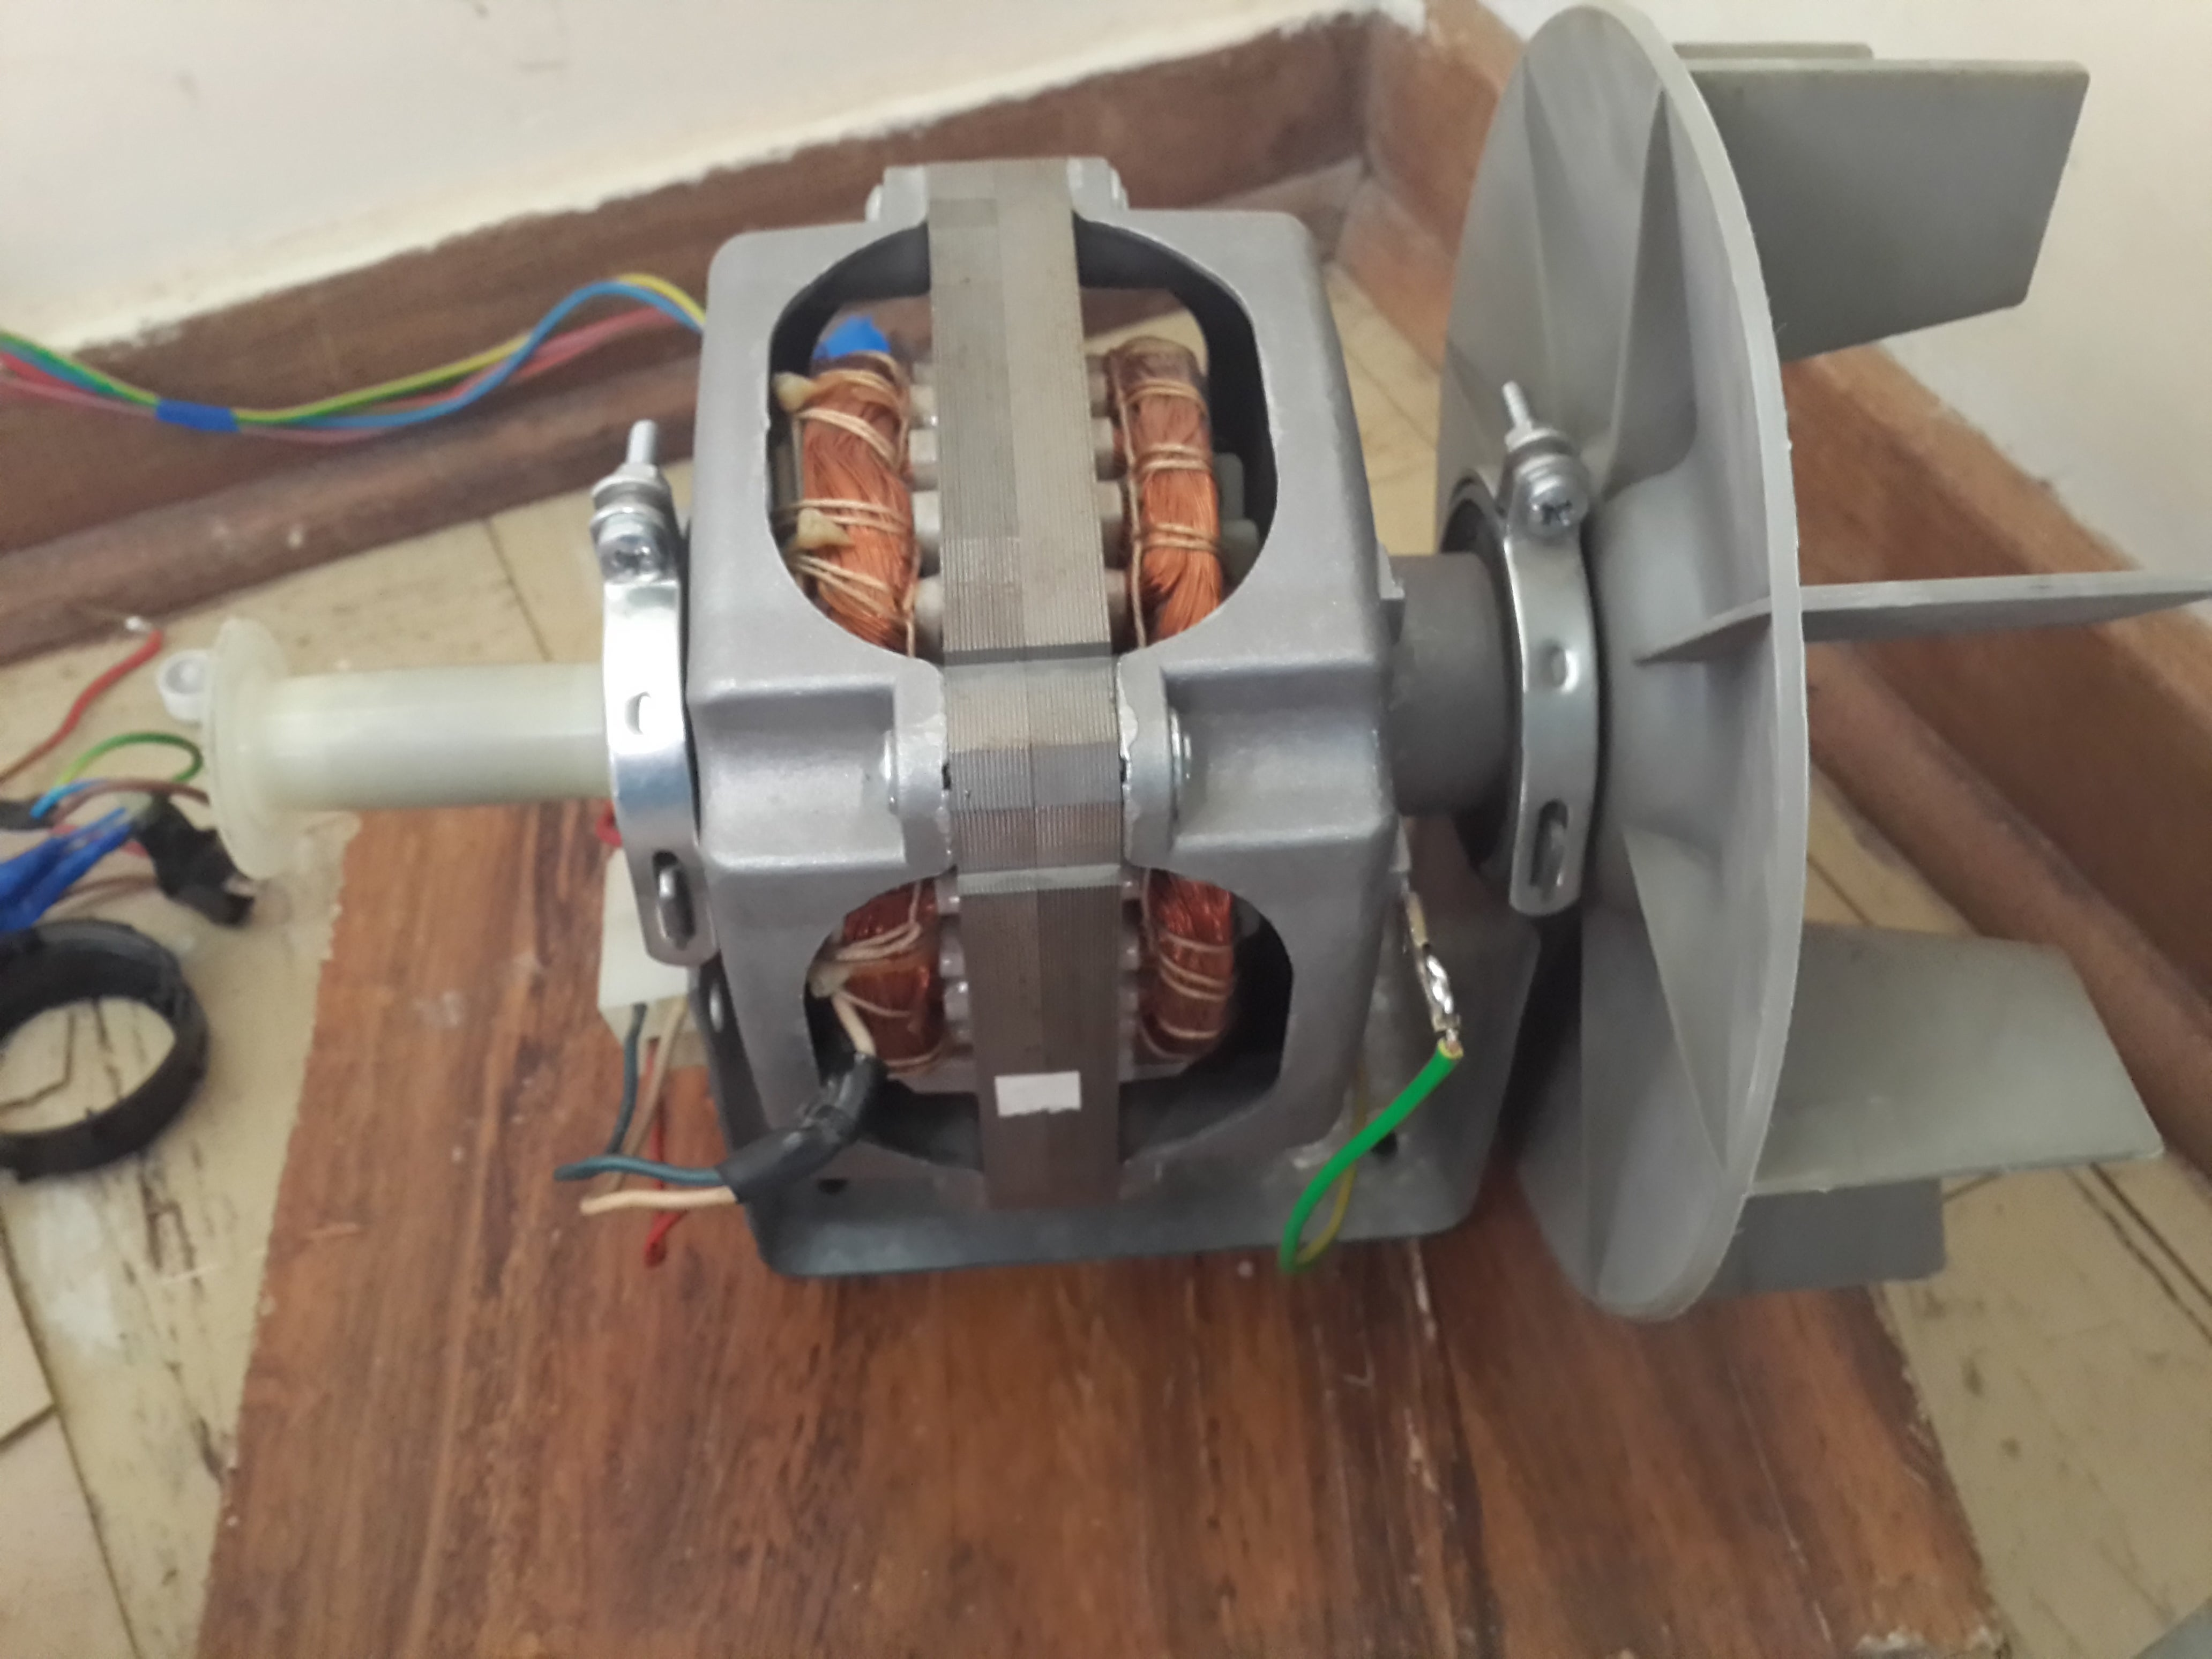 Wiring Clothes Dryer (tumble Dryer) Motor : 3 Steps - Instructables | Dryer Motor Wiring Harness Layout |  | Instructables